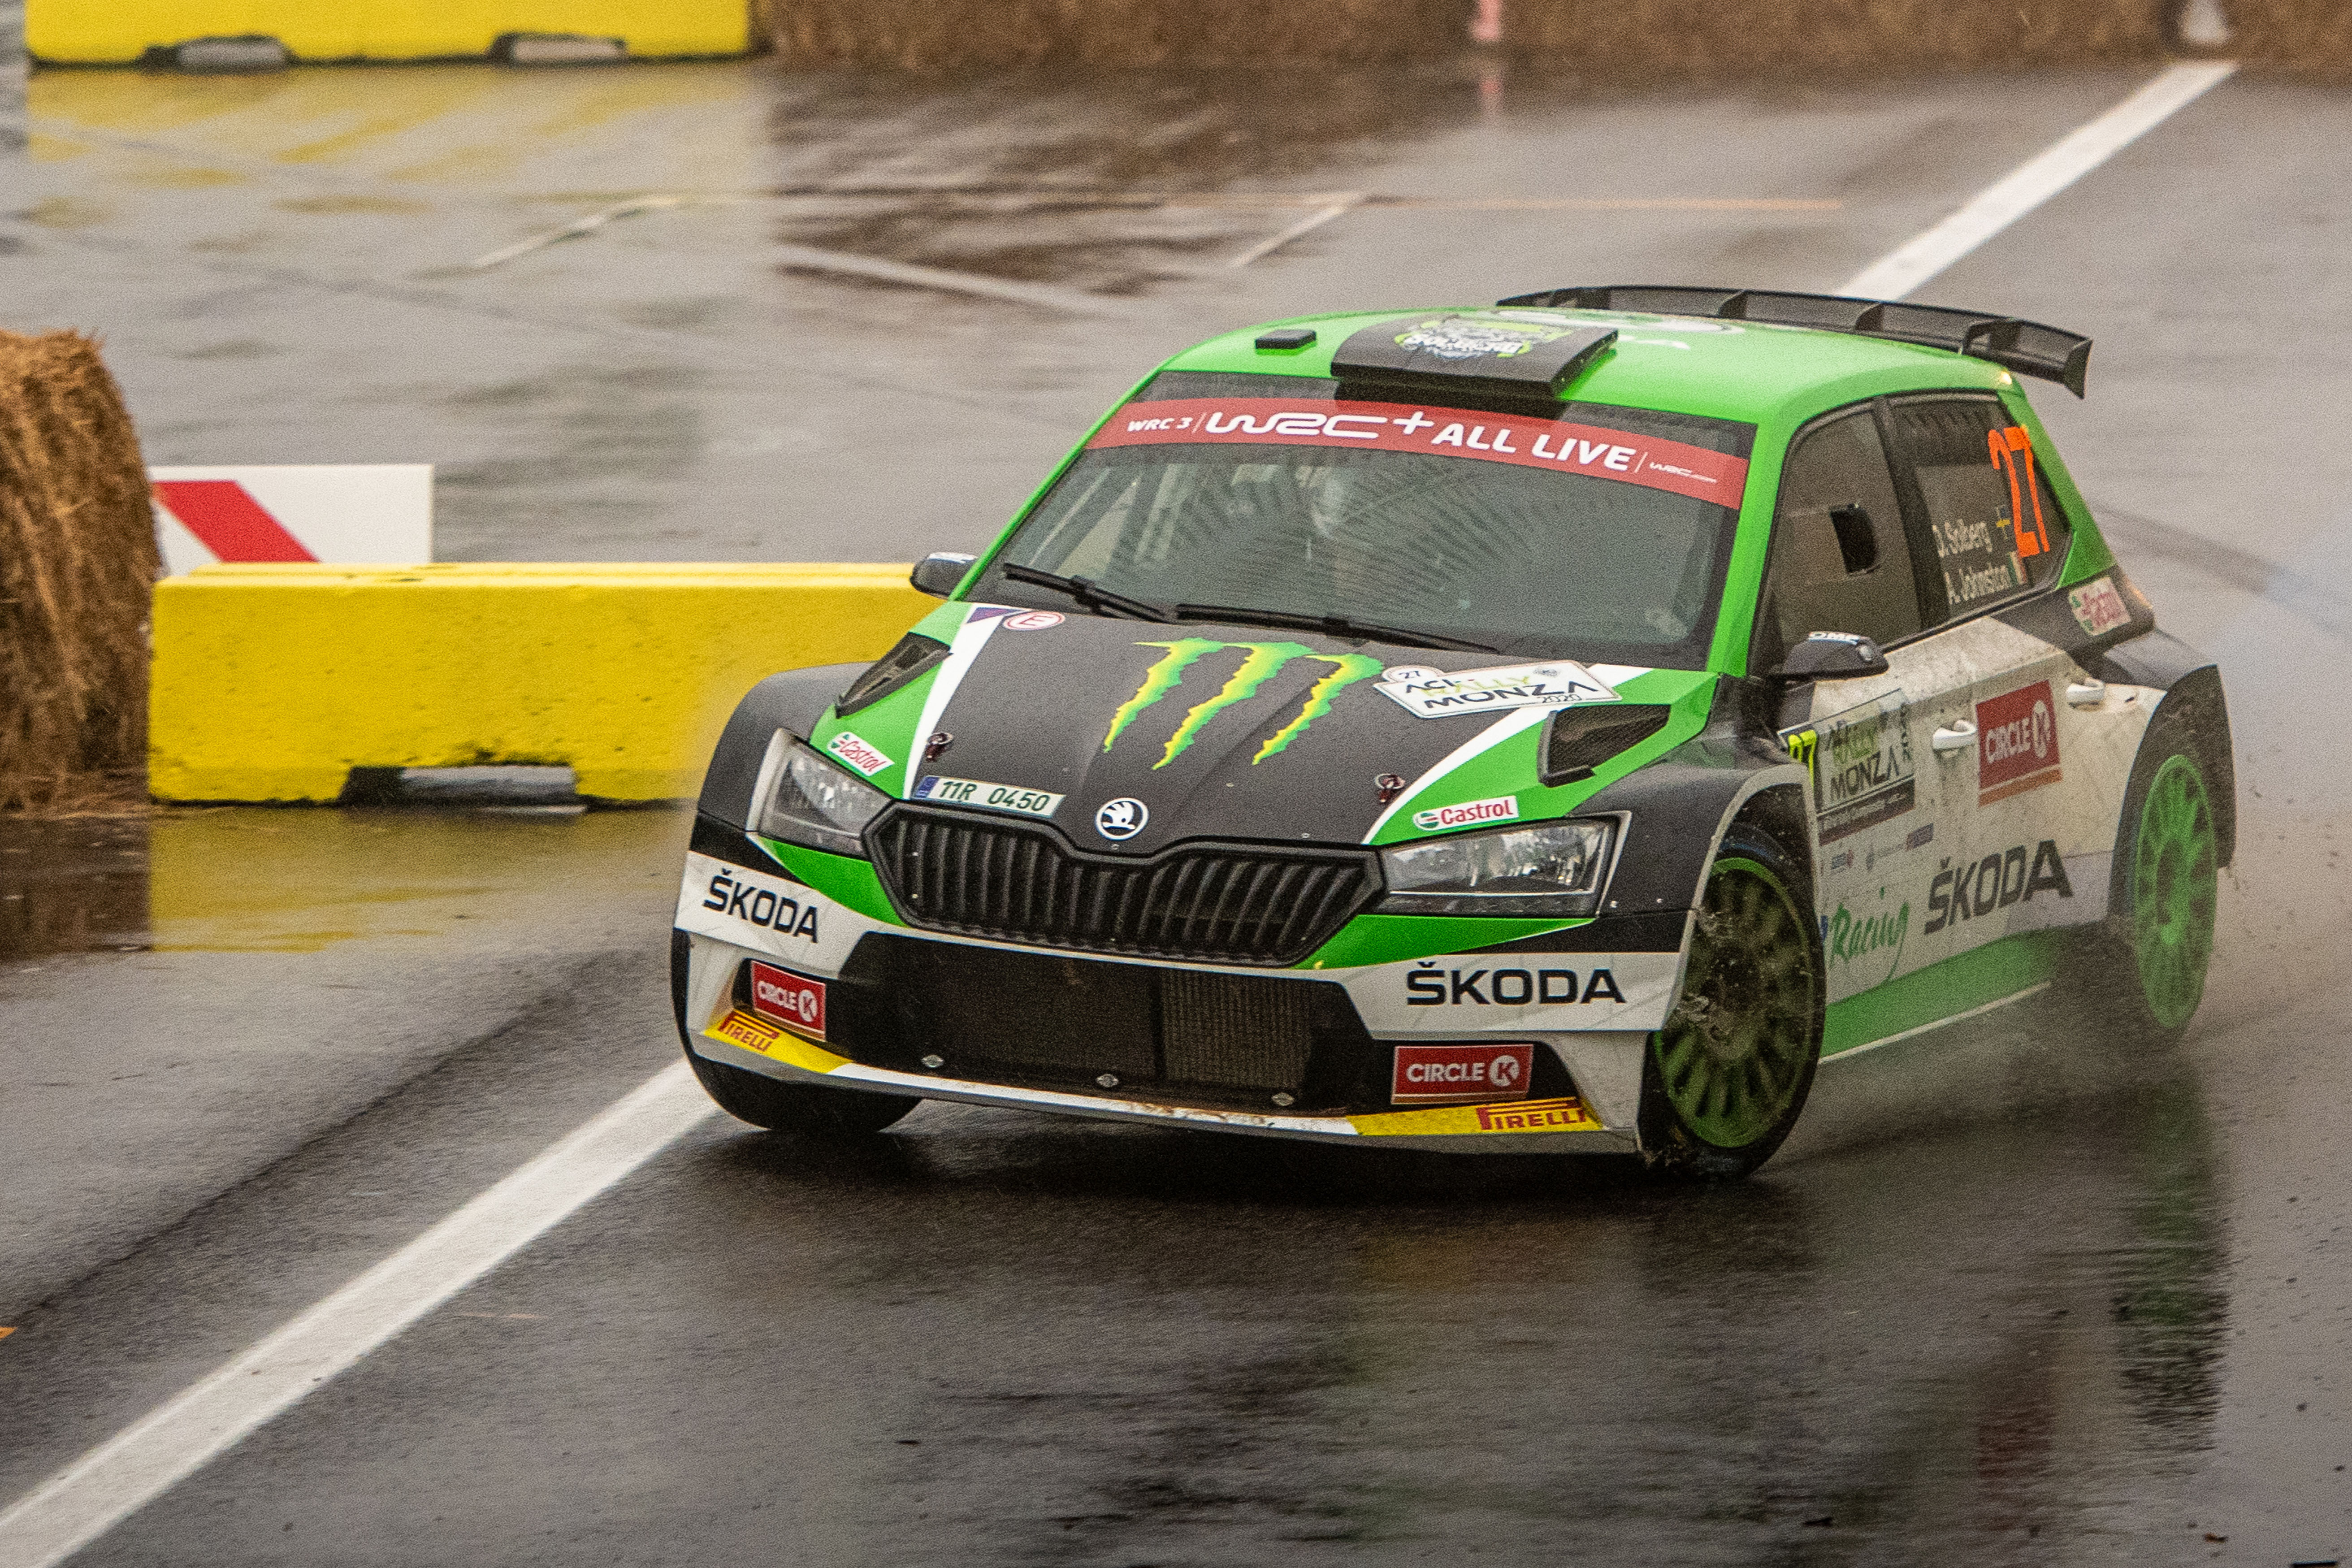 ACI Rally Monza: Clever tactics pays off as SKODA crews lead WRC2 and WRC3 after first leg - Image 4